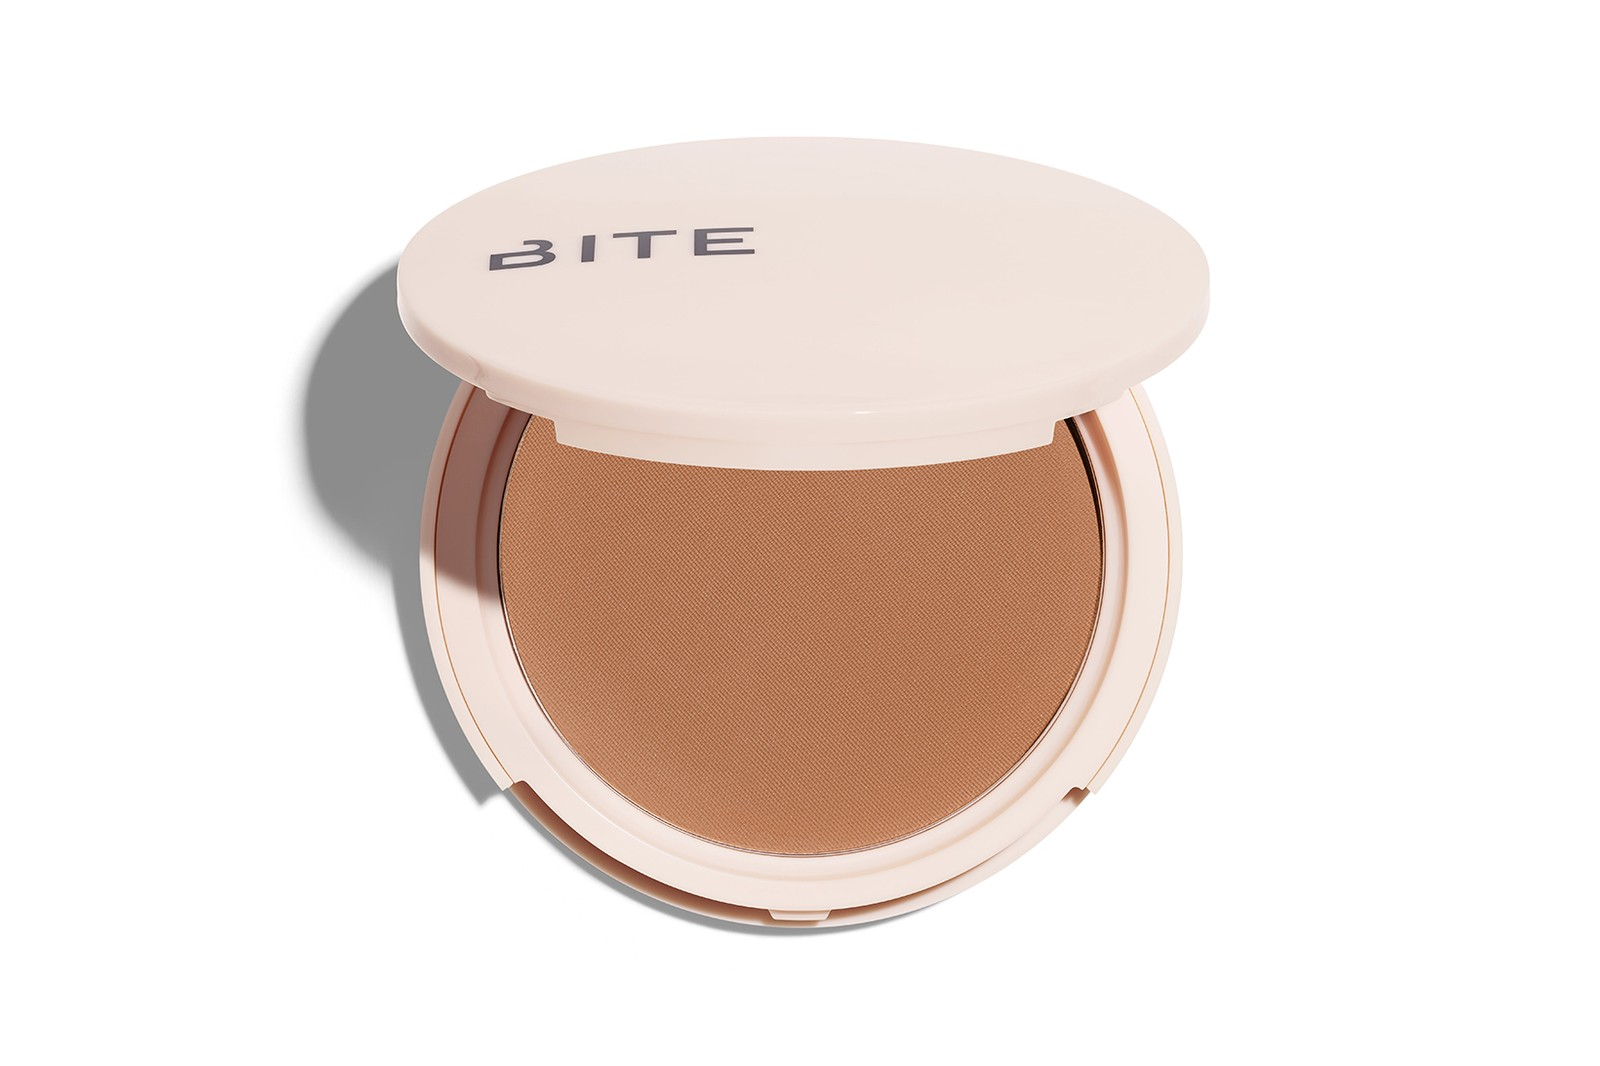 BITE Beauty Changemaker Complexion Collection Foundation Primer Powder